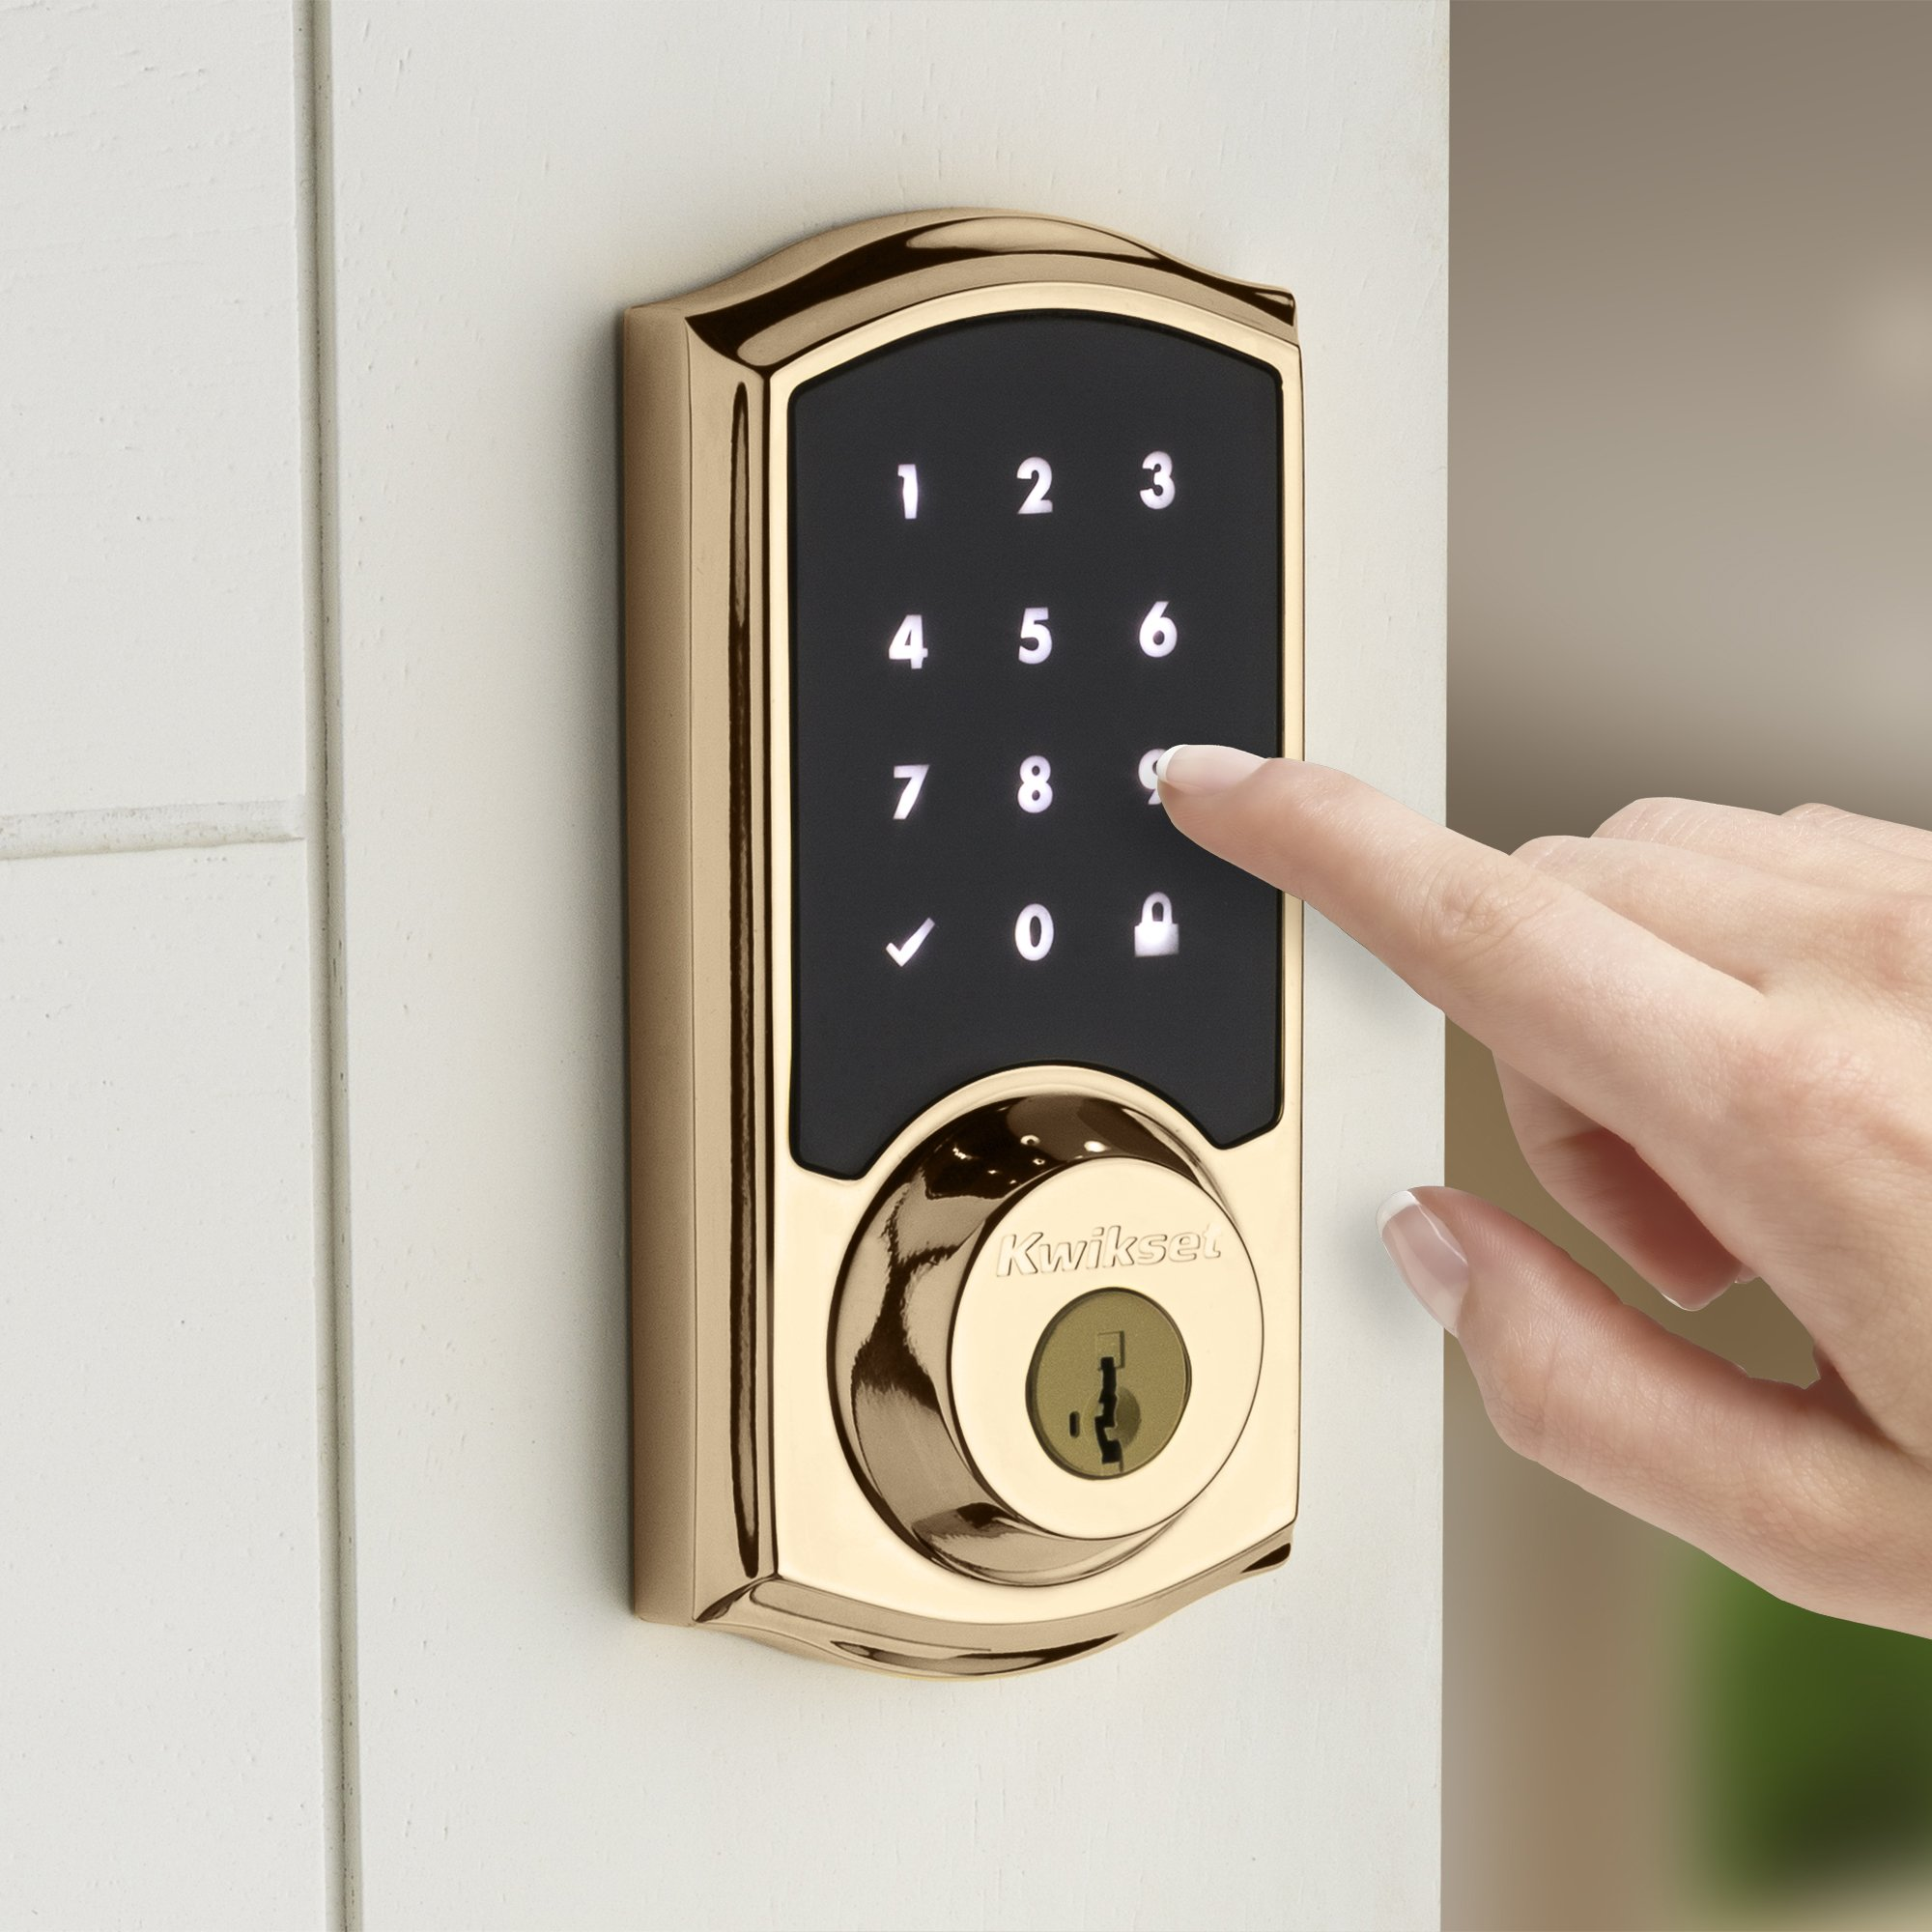 Kwikset 99160-007 SmartCode ZigBee Touchscreen Smart Lock works with Echo Plus & Alexa, featuring SmartKey, Lifetime Polished Brass by Kwikset (Image #5)